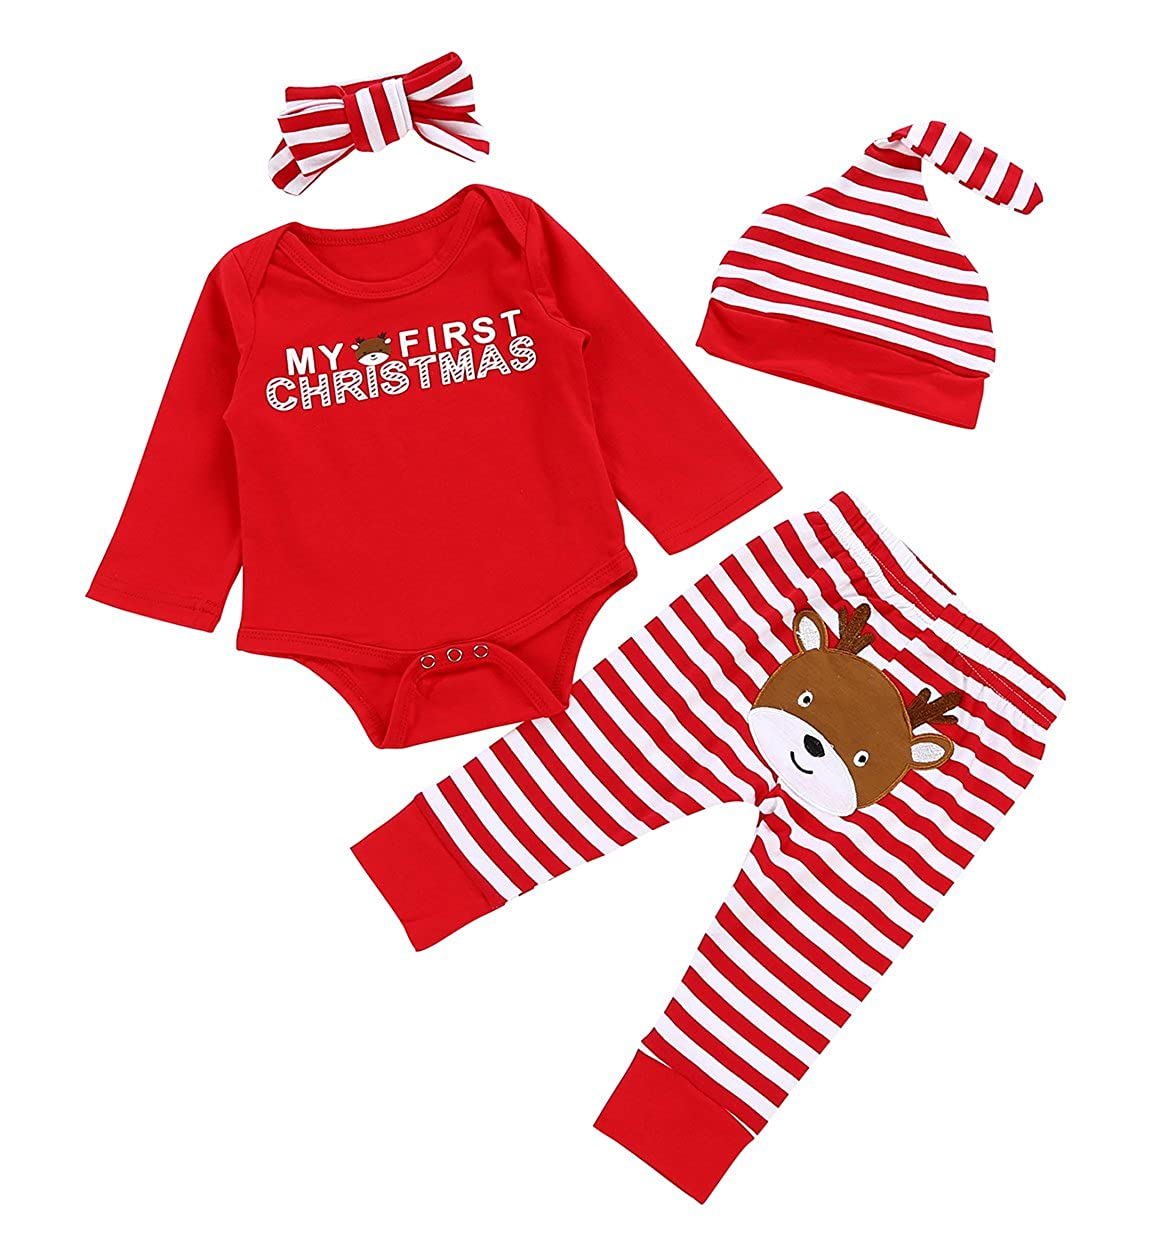 30e5039bc Top 10 wholesale My First Christmas Outfit - Chinabrands.com